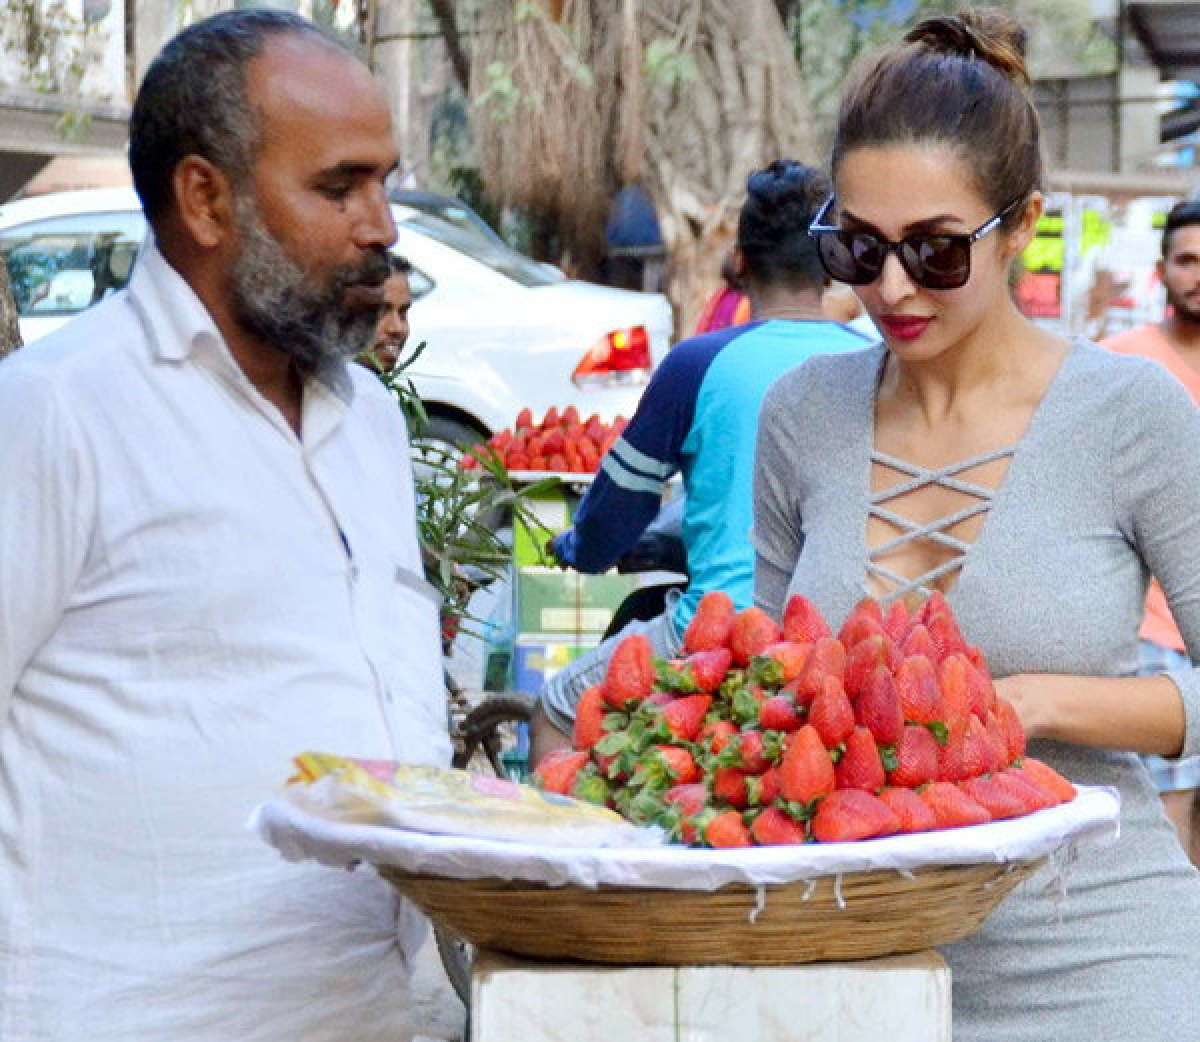 Just like the common man! Pictures of Bollywood stars minus celeb airs